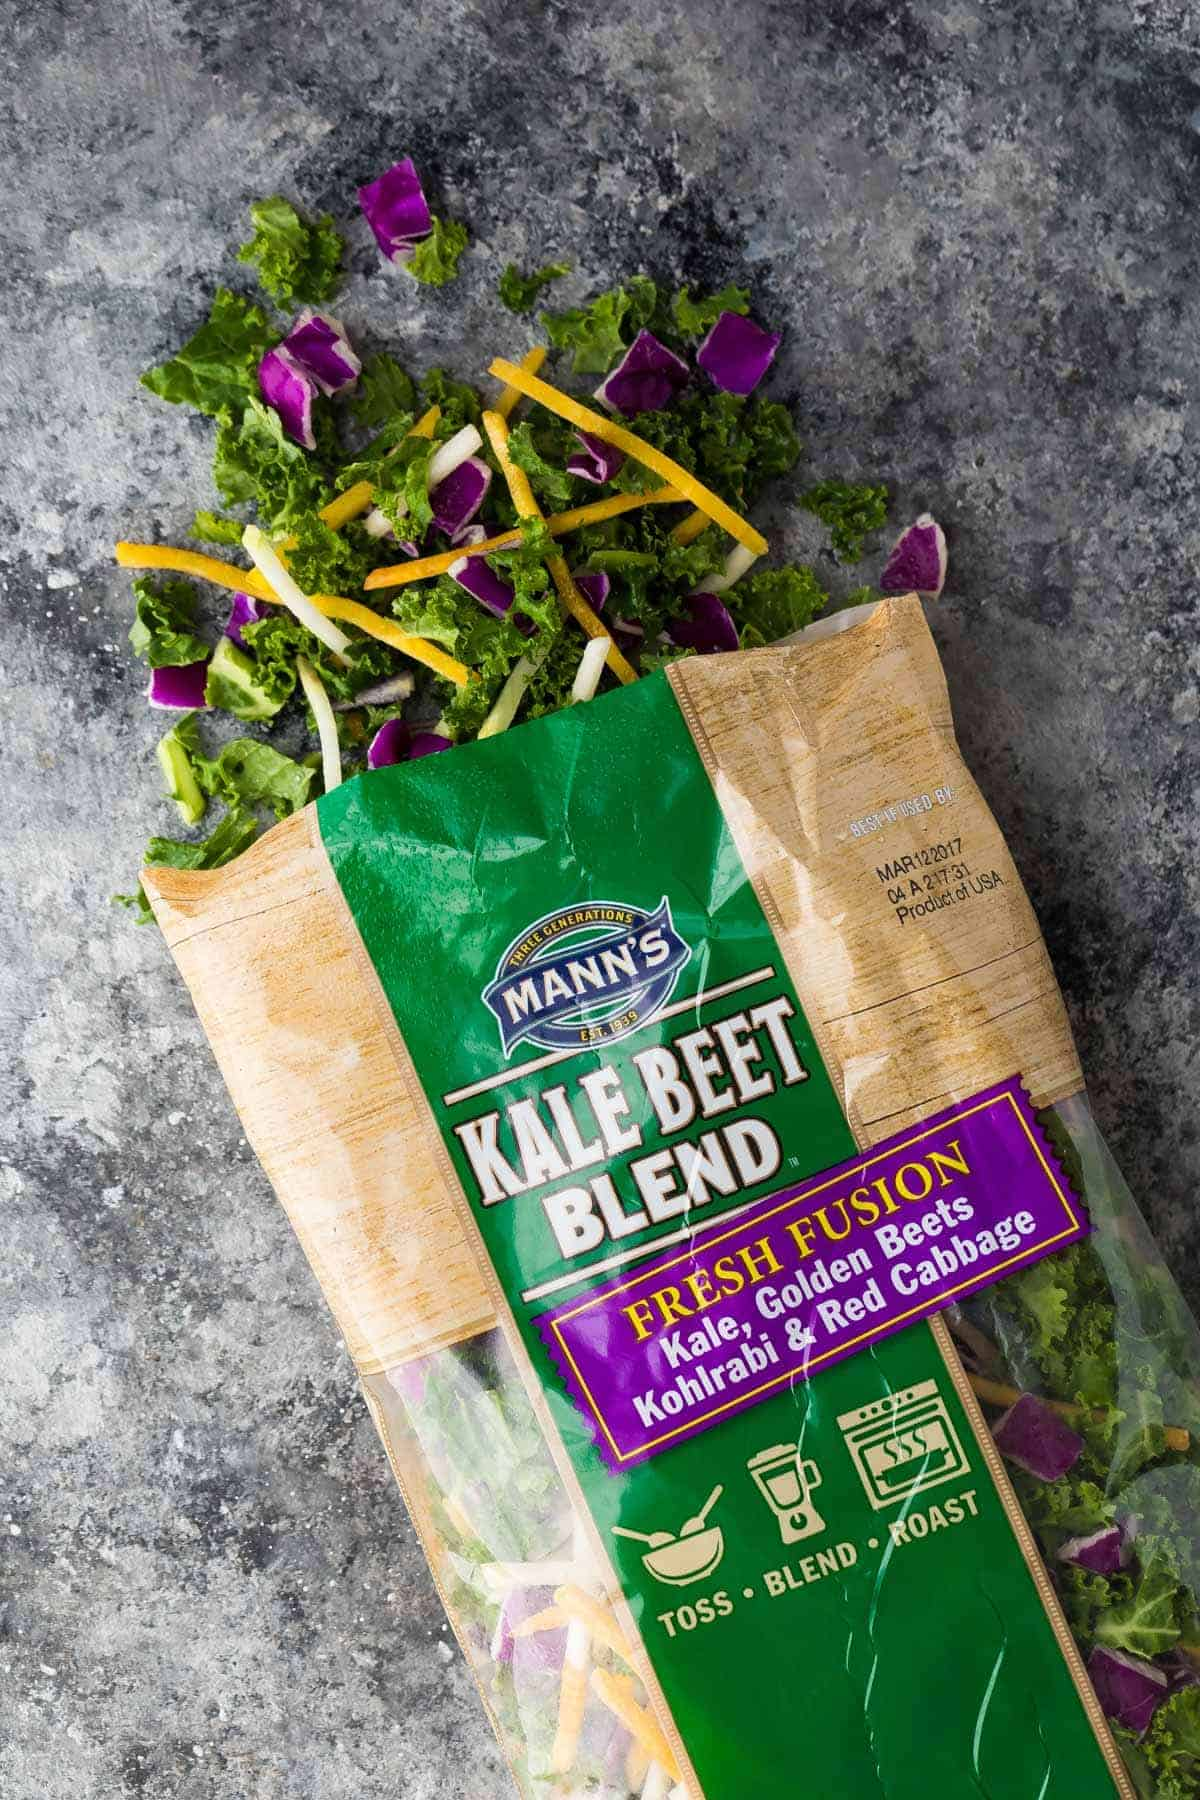 overhead view of a bag of Mann's Kale Beet Blend salad mix